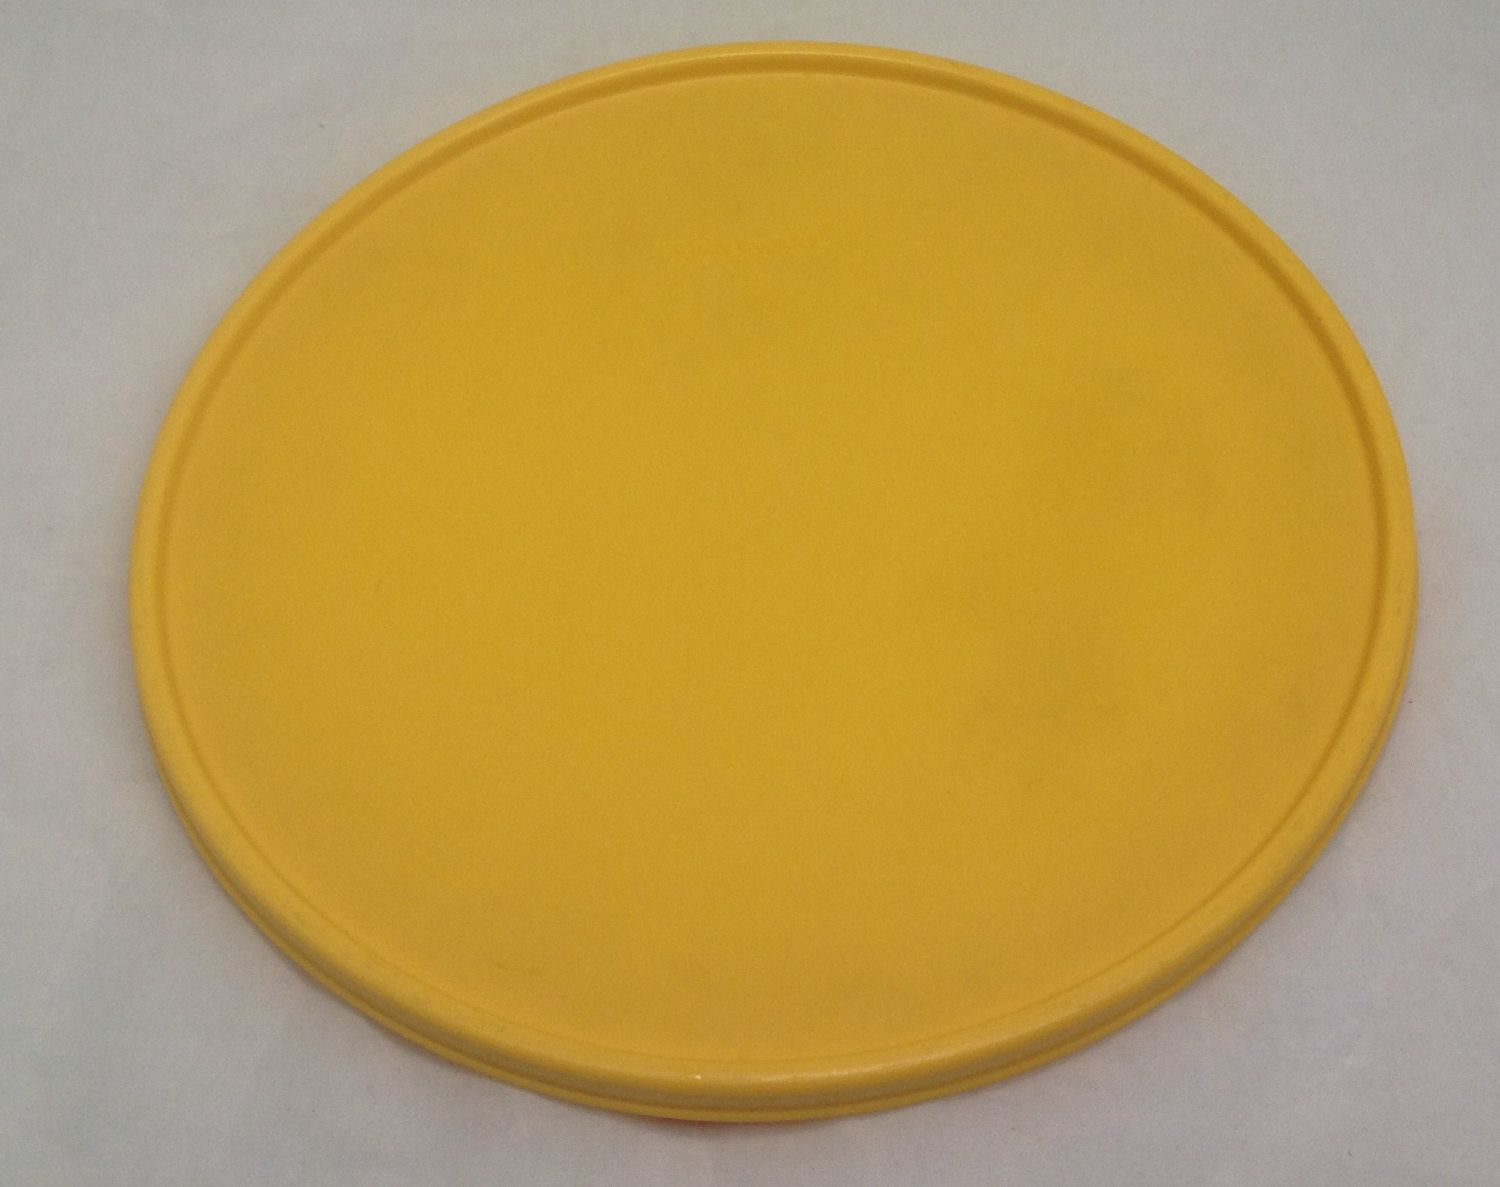 Tupperware Bowl Round Replacement Lid Only 1832 6 10 Yellow By